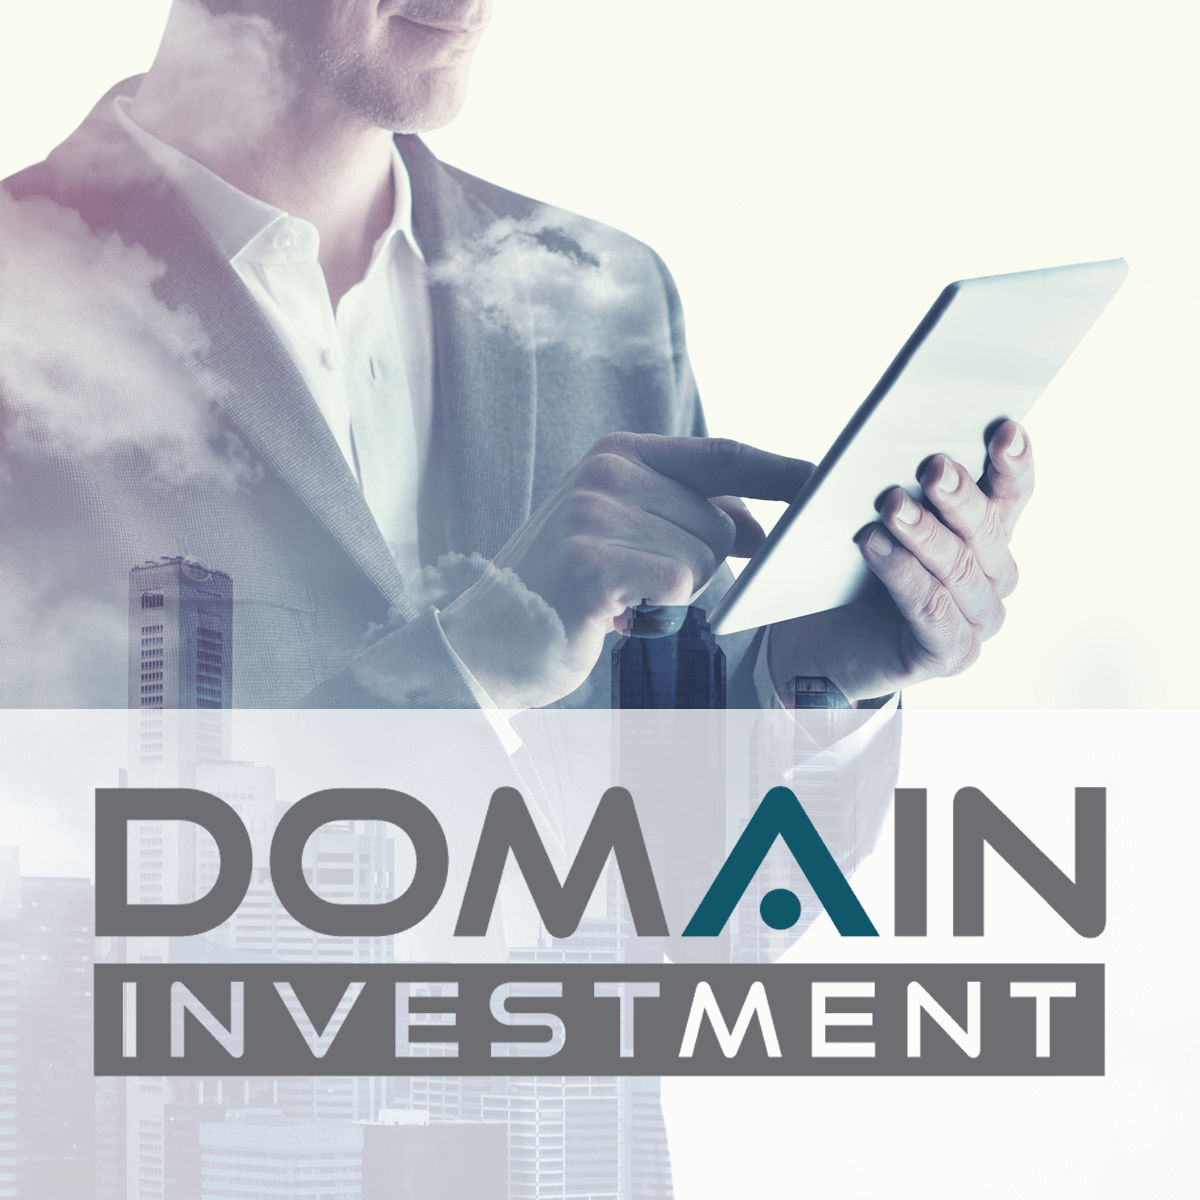 (c) Domaininvestment.de